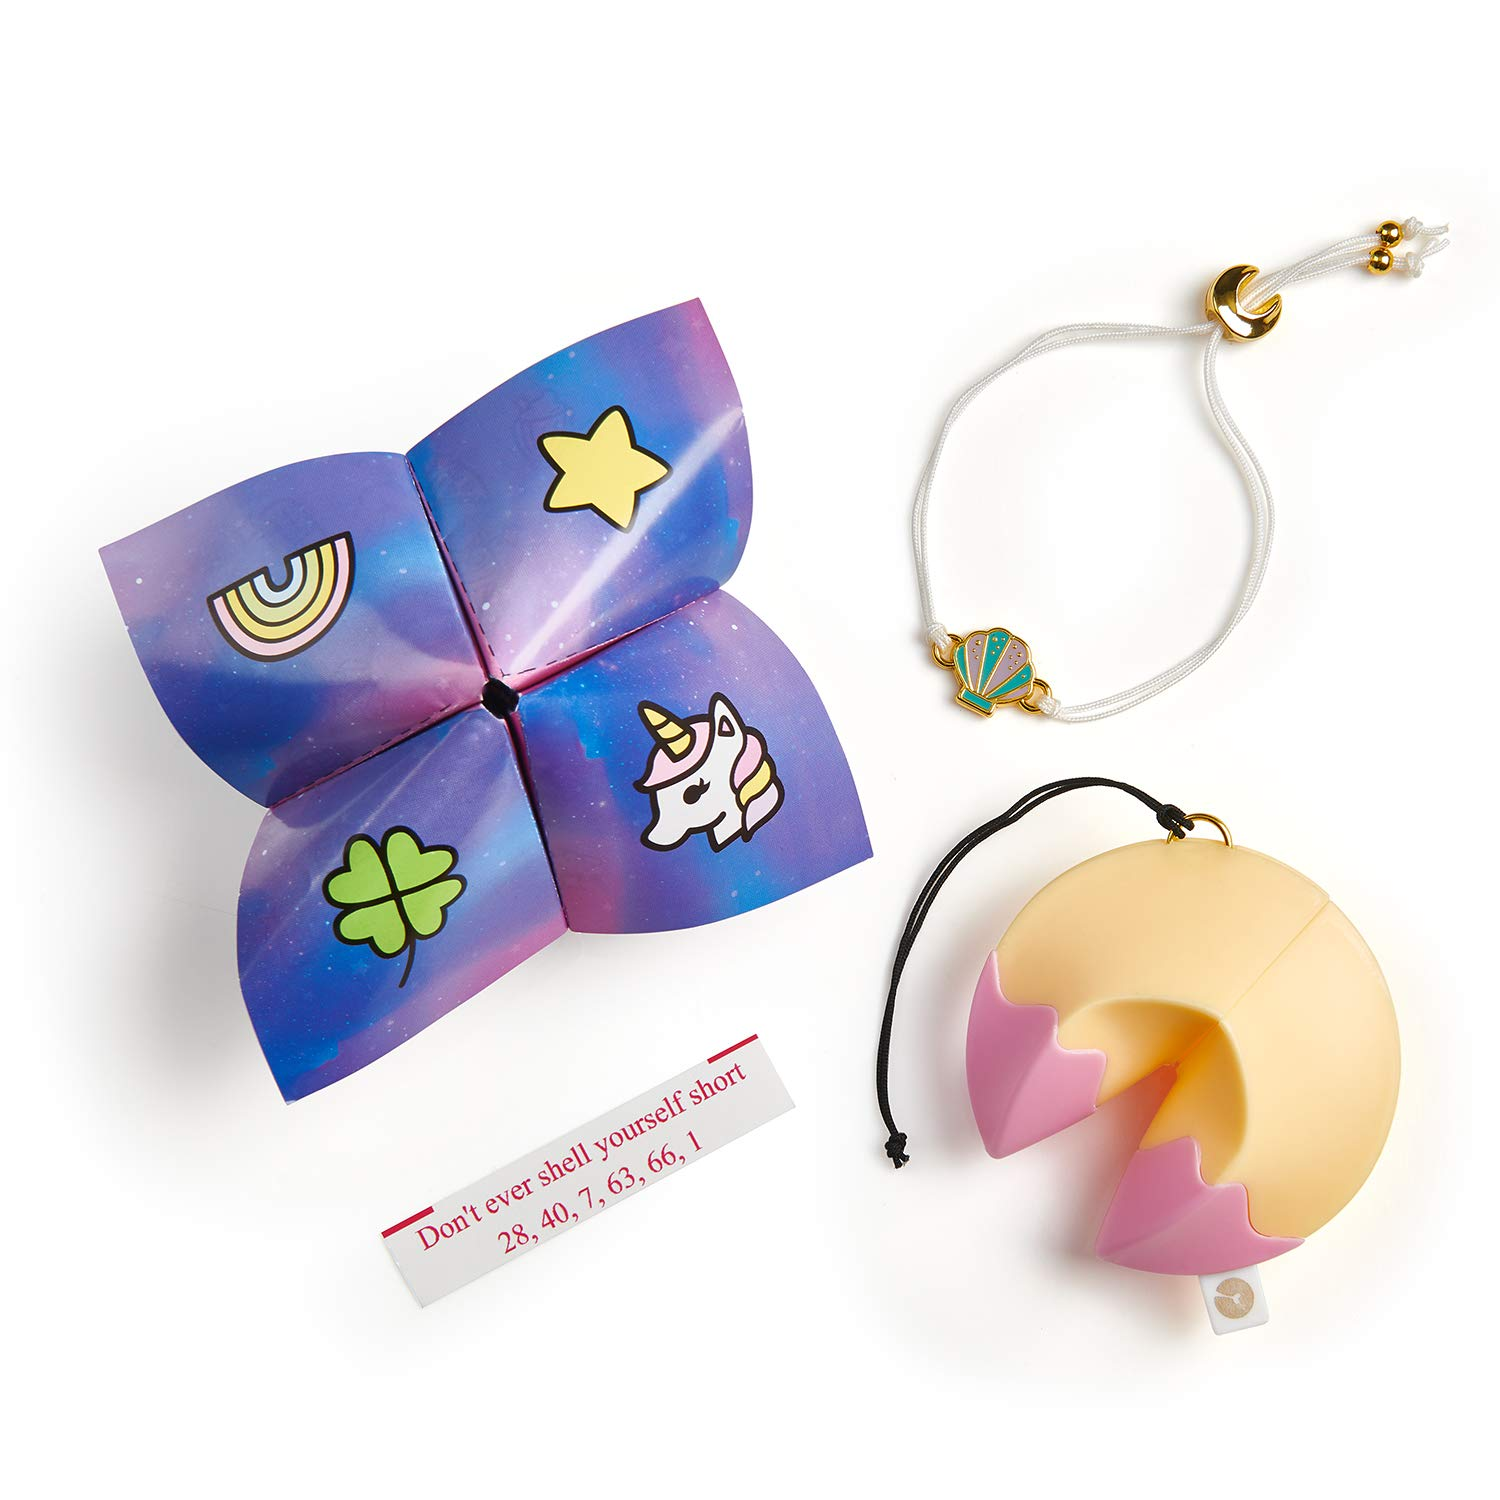 WowWee Lucky Fortune Blind Collectible Bracelets - 4 Pack Take-Out Box - Series 1 by WowWee (Image #2)